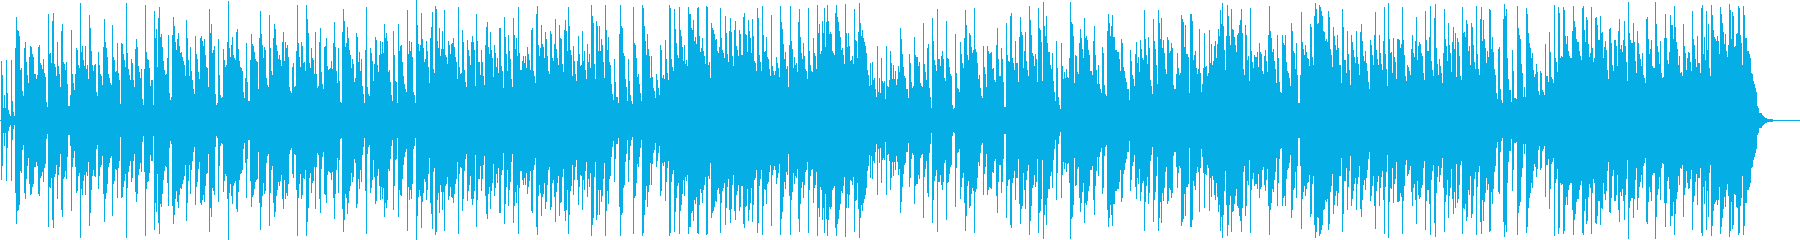 Funny information music's reproduced waveform